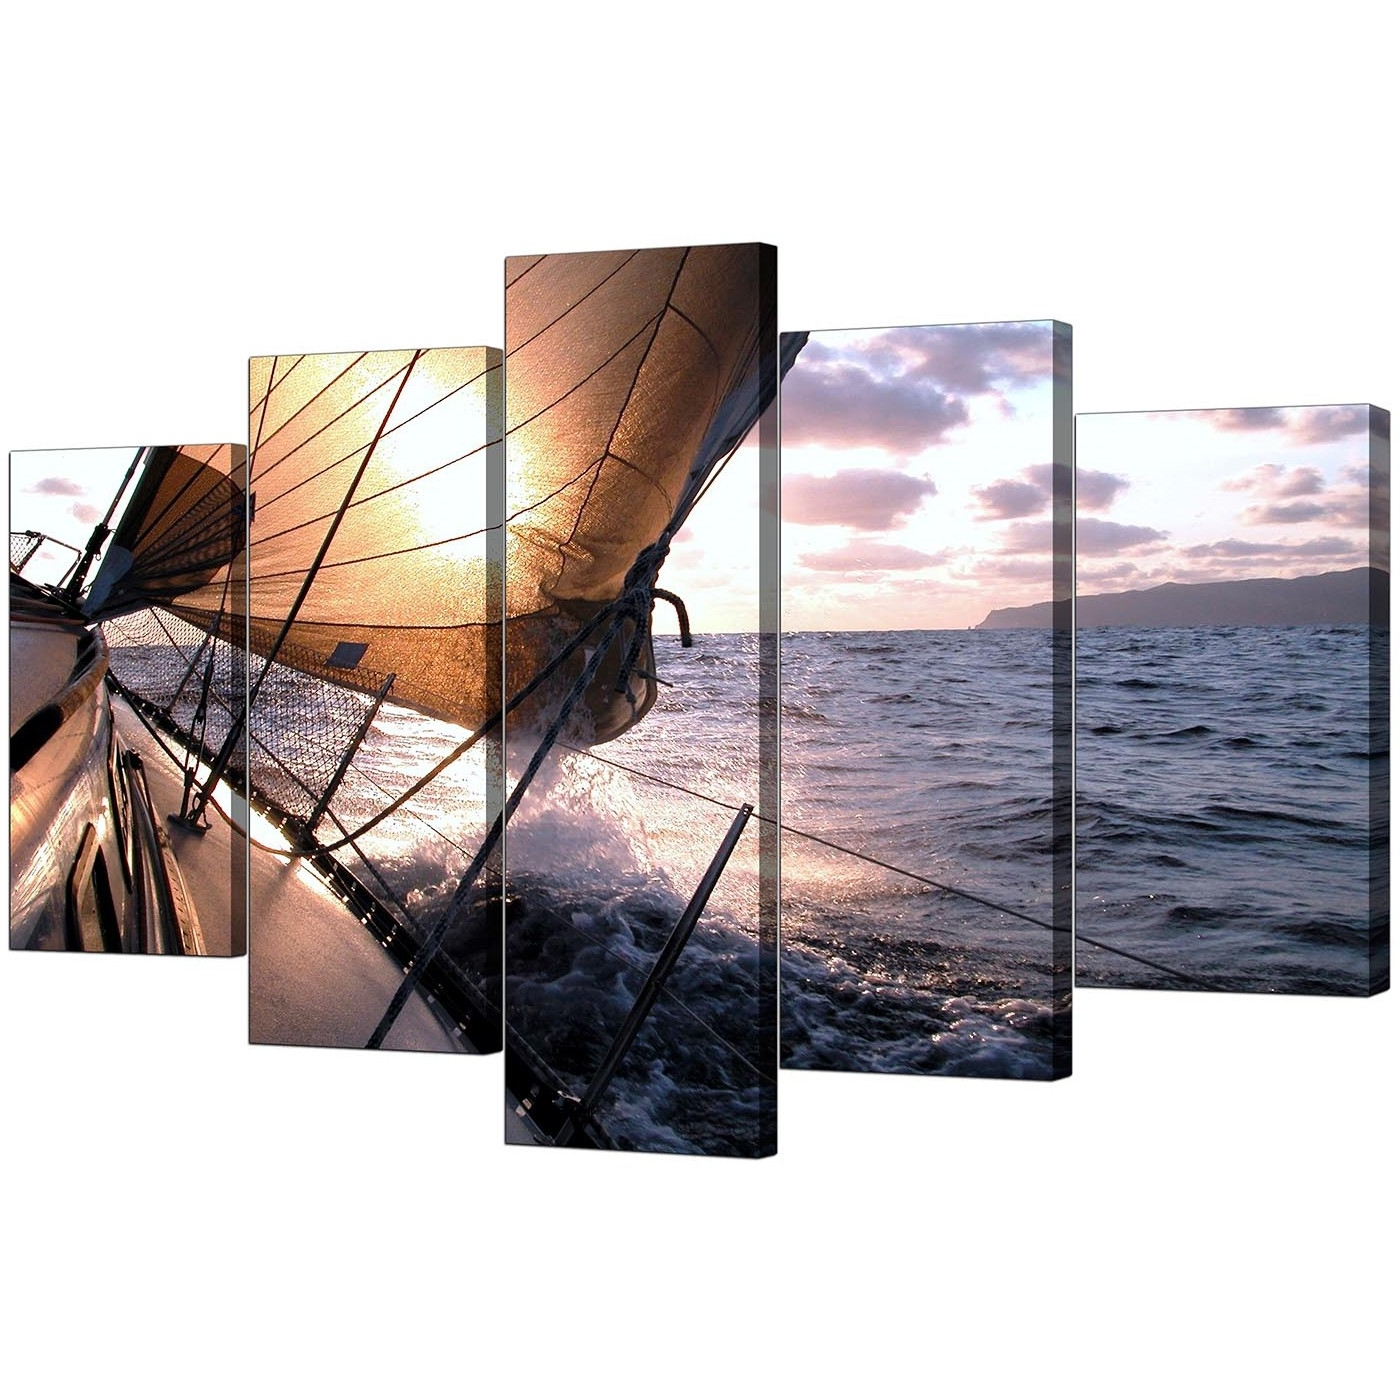 Boat Canvas Prints Uk For Your Living Room – 5 Piece Inside Latest 5 Piece Wall Art Canvas (View 6 of 15)